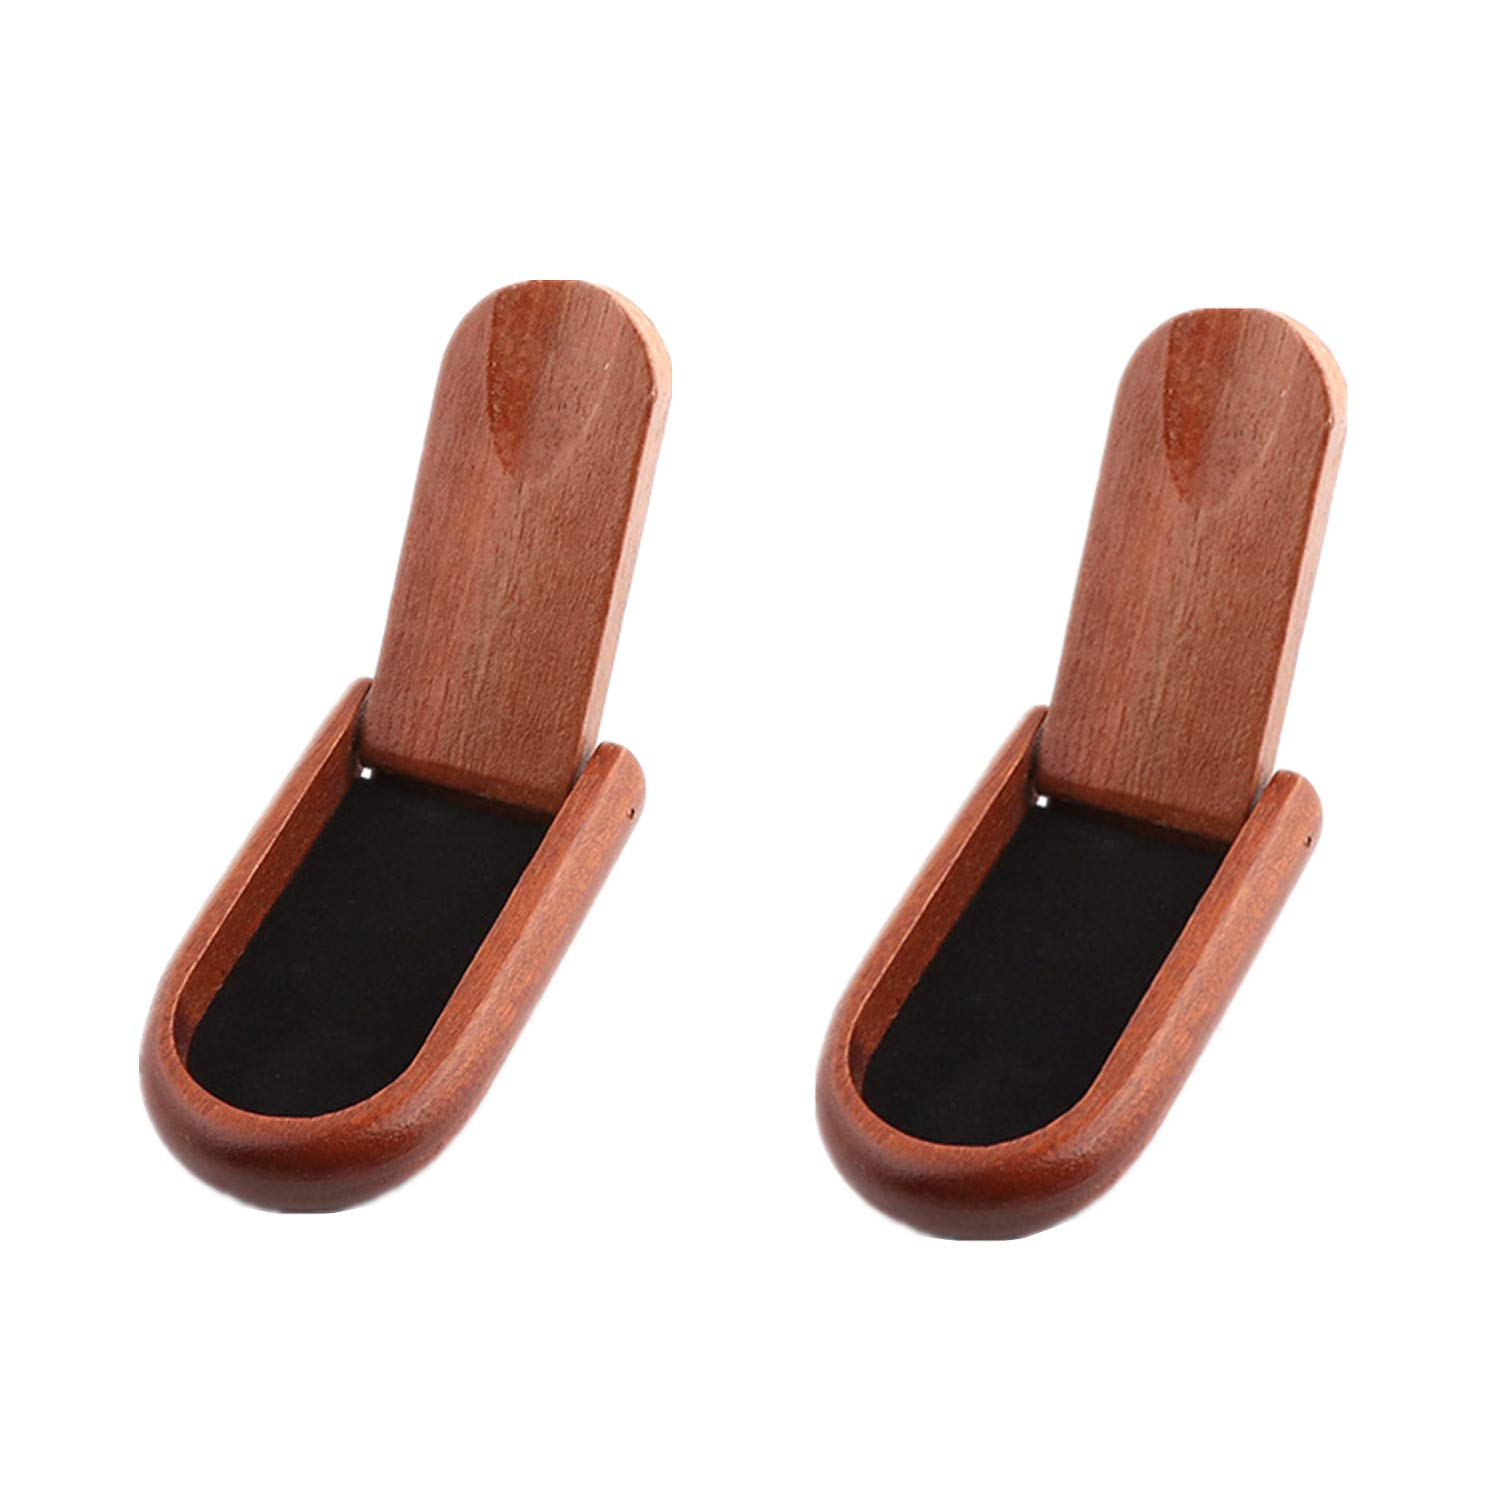 MIAO JIN 2 Pack Foldable Wood Smoking Pipe Holder Tobacco Pipe Stand Cigar Holder for Single Pipe by MIAO JIN